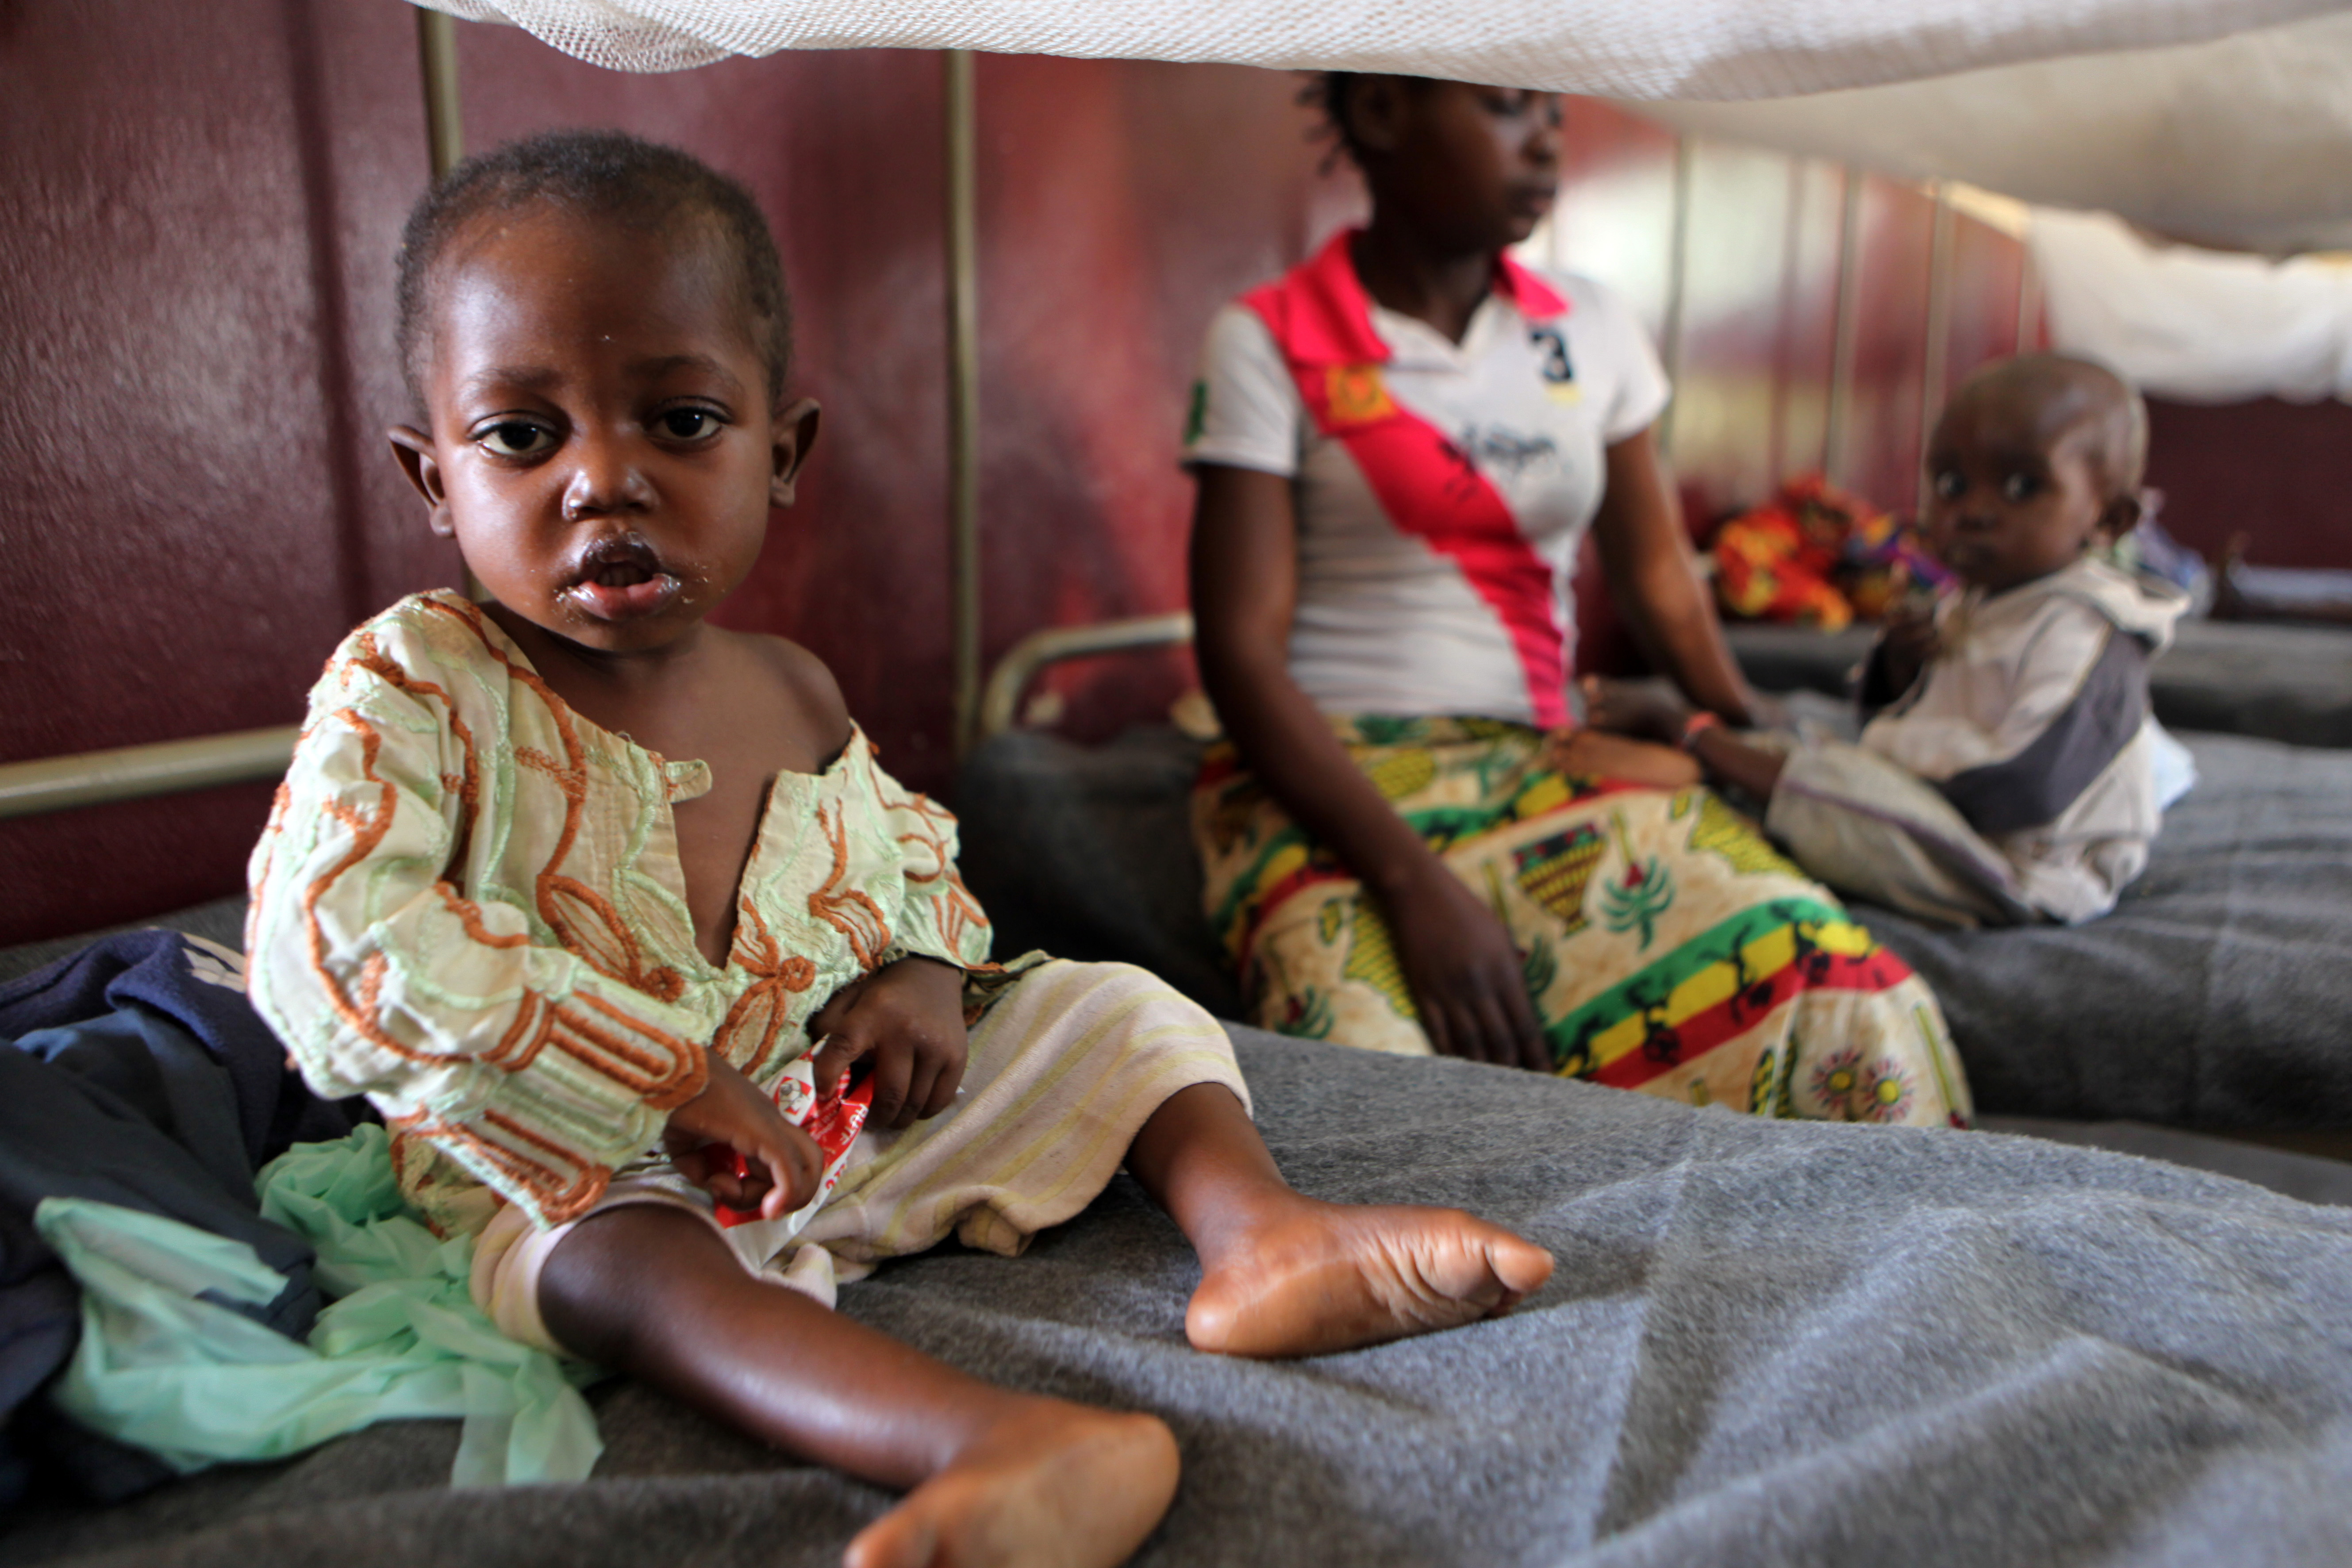 There were major concerns about the rate of severe malnutrition after two years of violence in CAR.